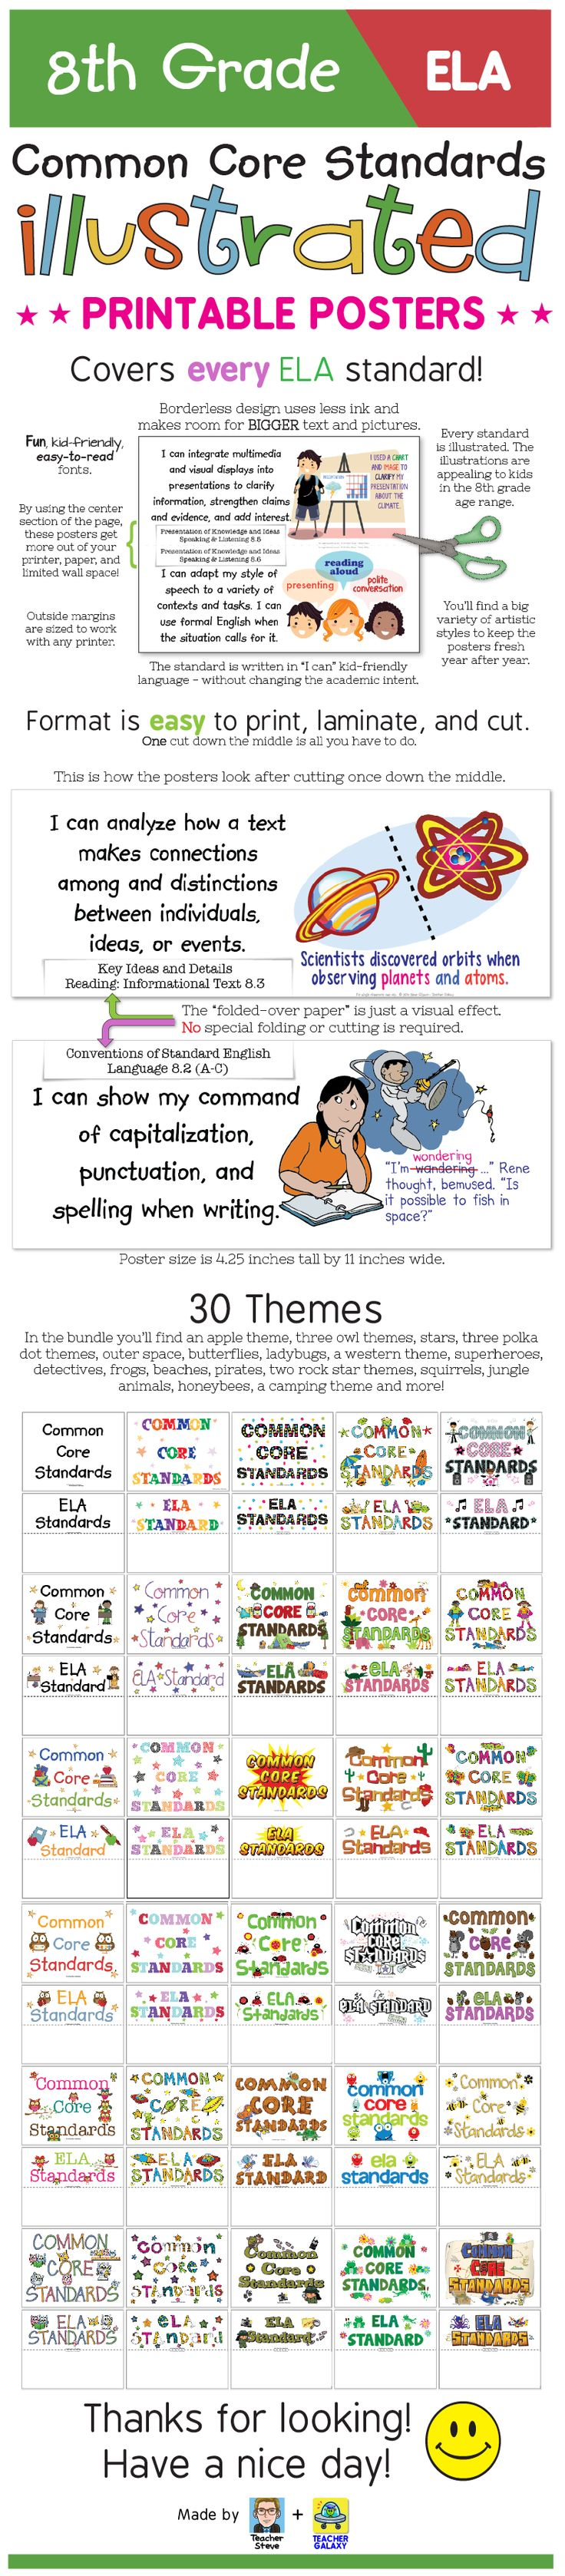 "These posters for the 8th grade English-Language Arts Common Core Standards bring the standard to life and make it easier to understand with age-appropriate illustrations and kid-friendly ""I can"" language. The posters have a unique borderless design that will get the most out of your wall space, paper, and ink. 30 themes to choose from. Or you can use them without a theme. Big, colorful, age-appropriate posters for the eighth grade ELA common core! $"